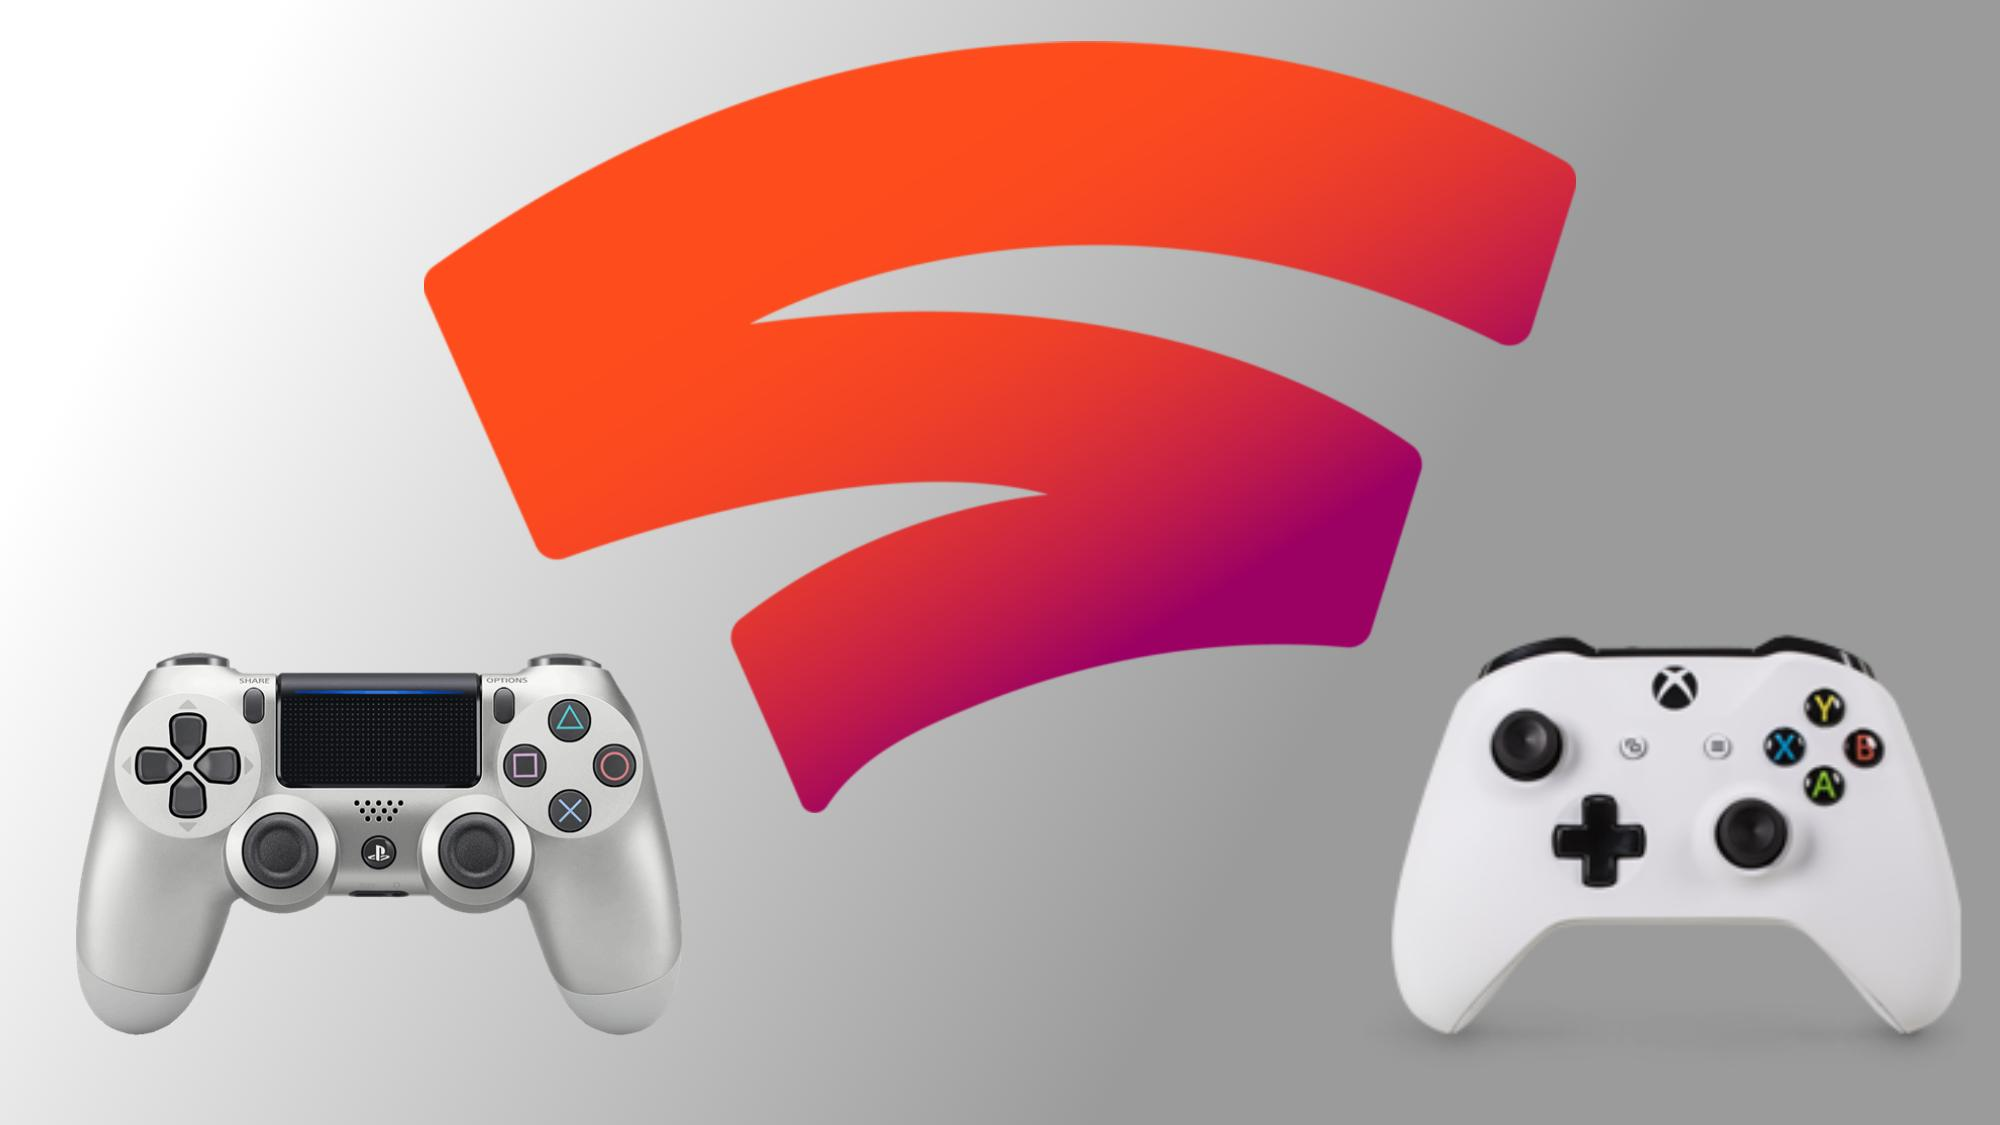 Chrome is adding a much-needed feature for XBOX and PS4 controllers for Stadia